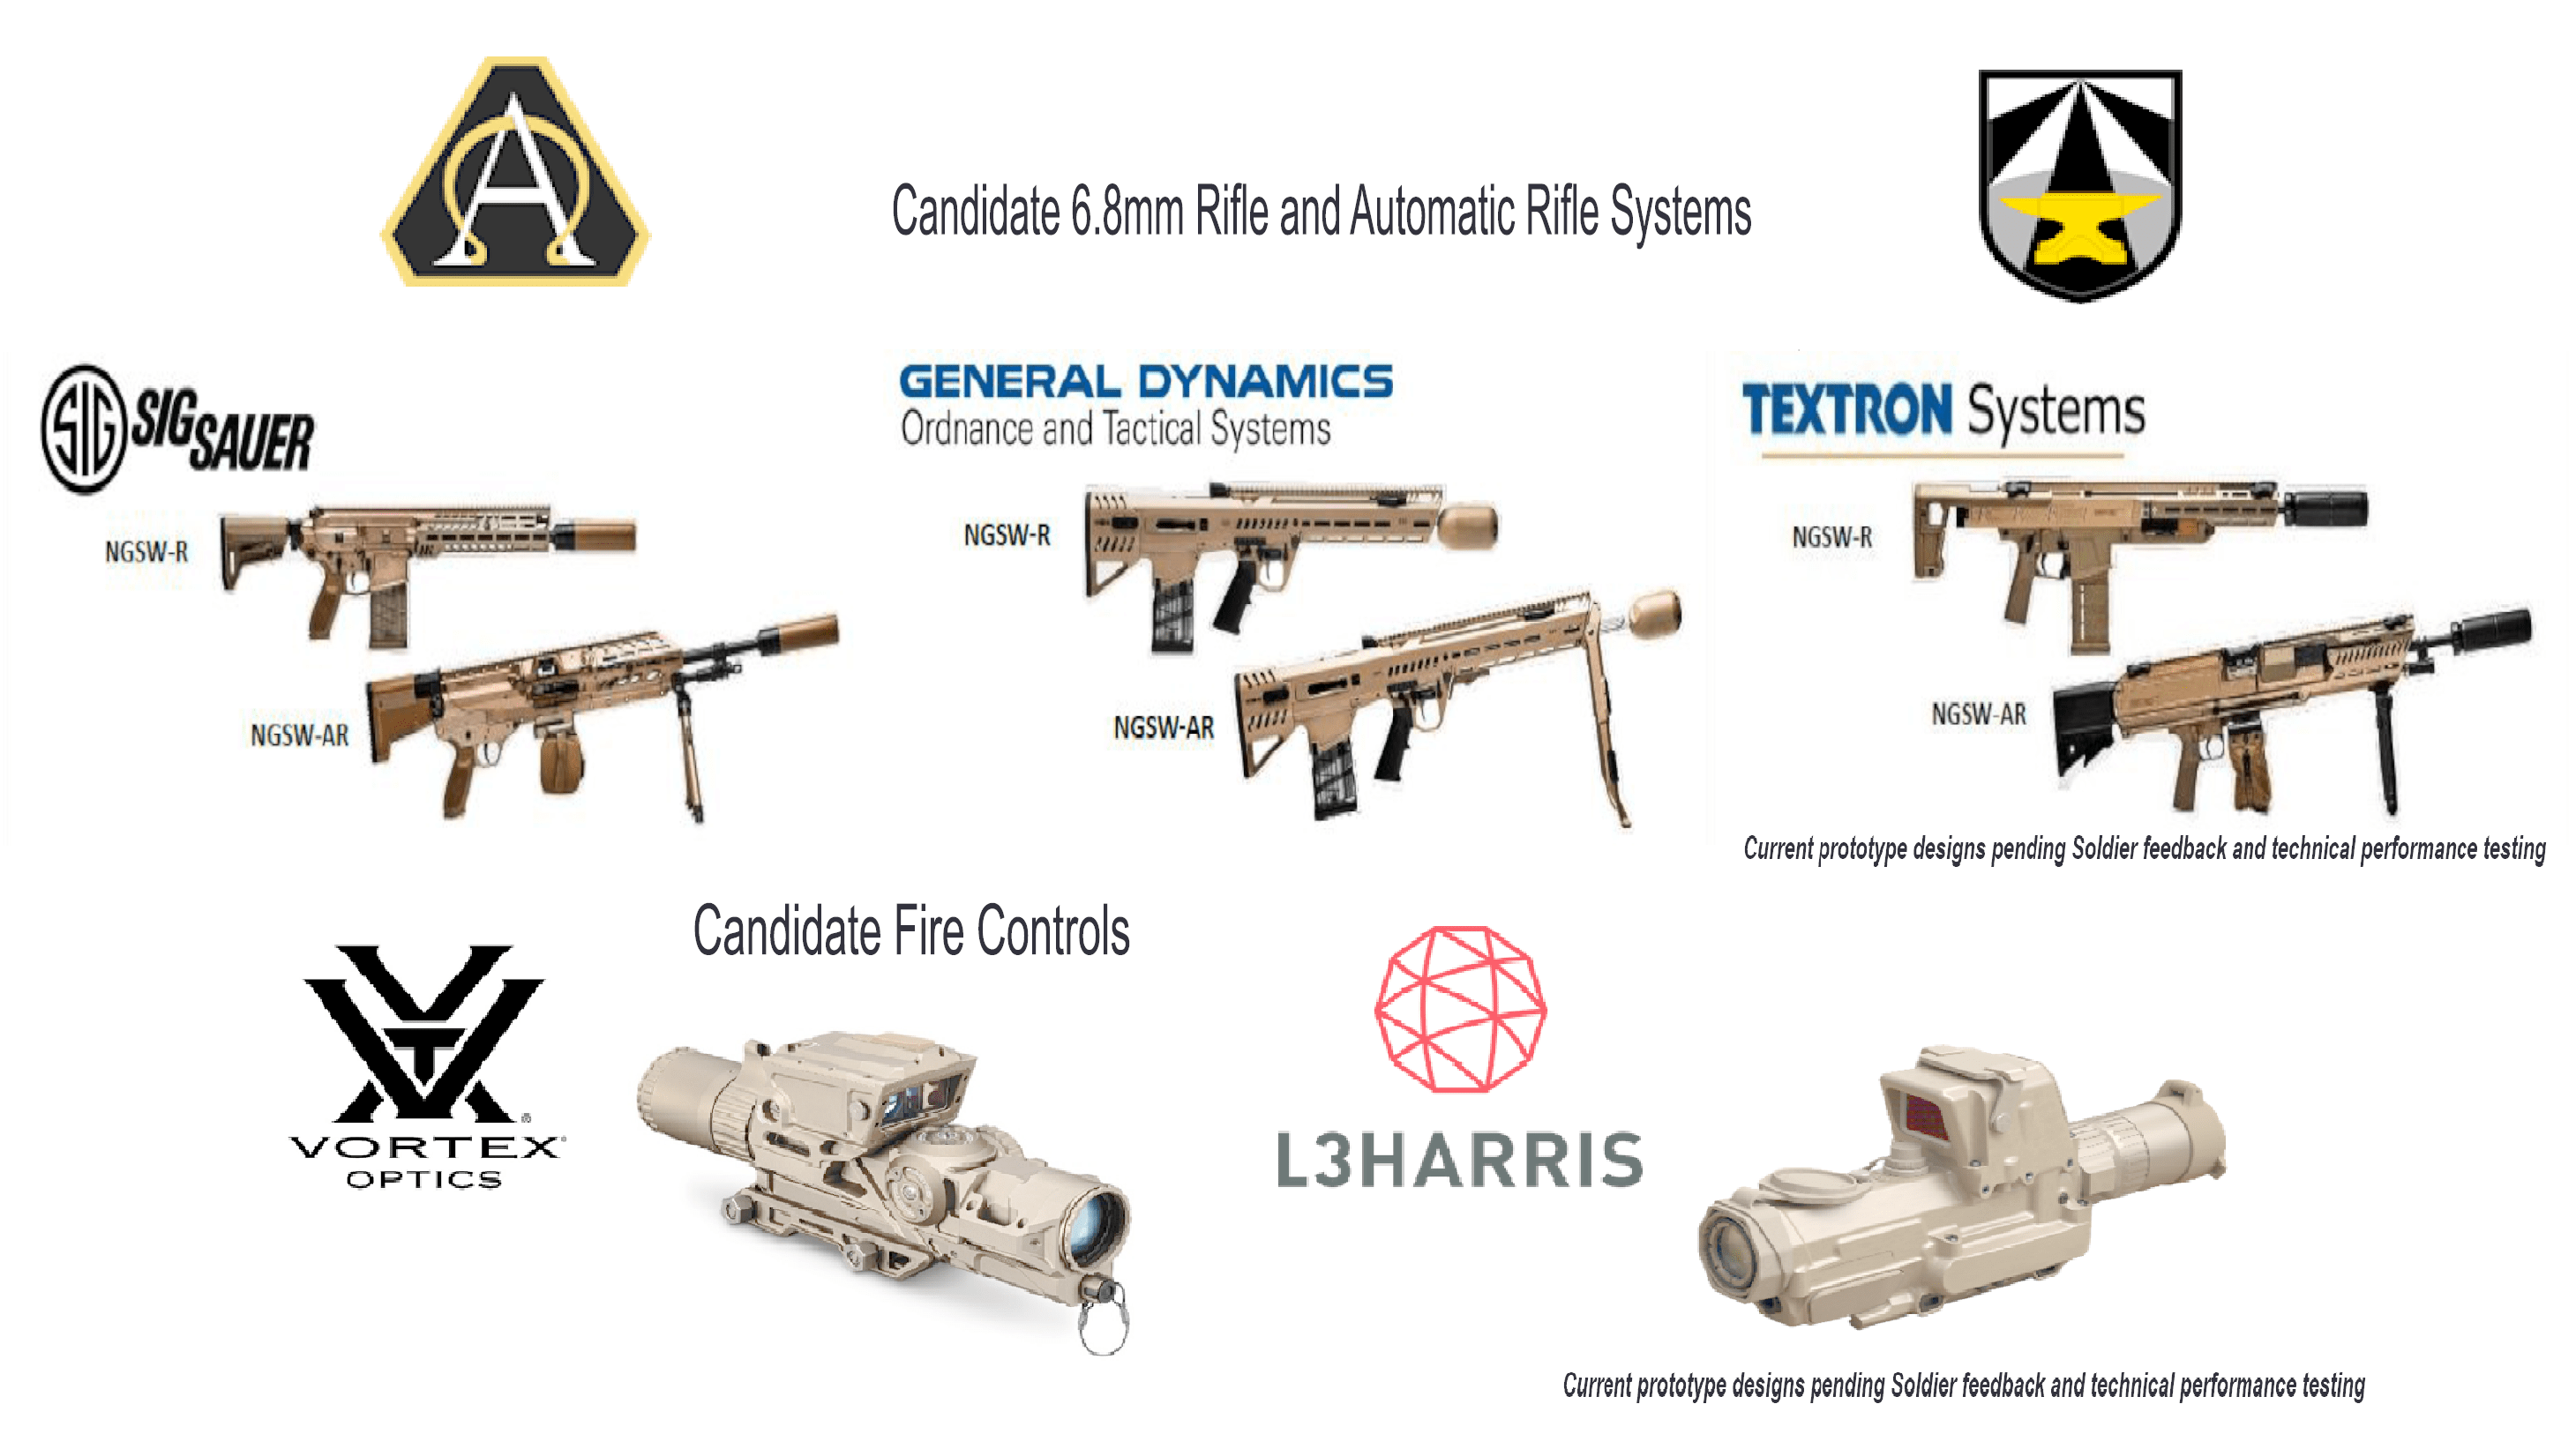 The competing systems and companies for the rifle contract.